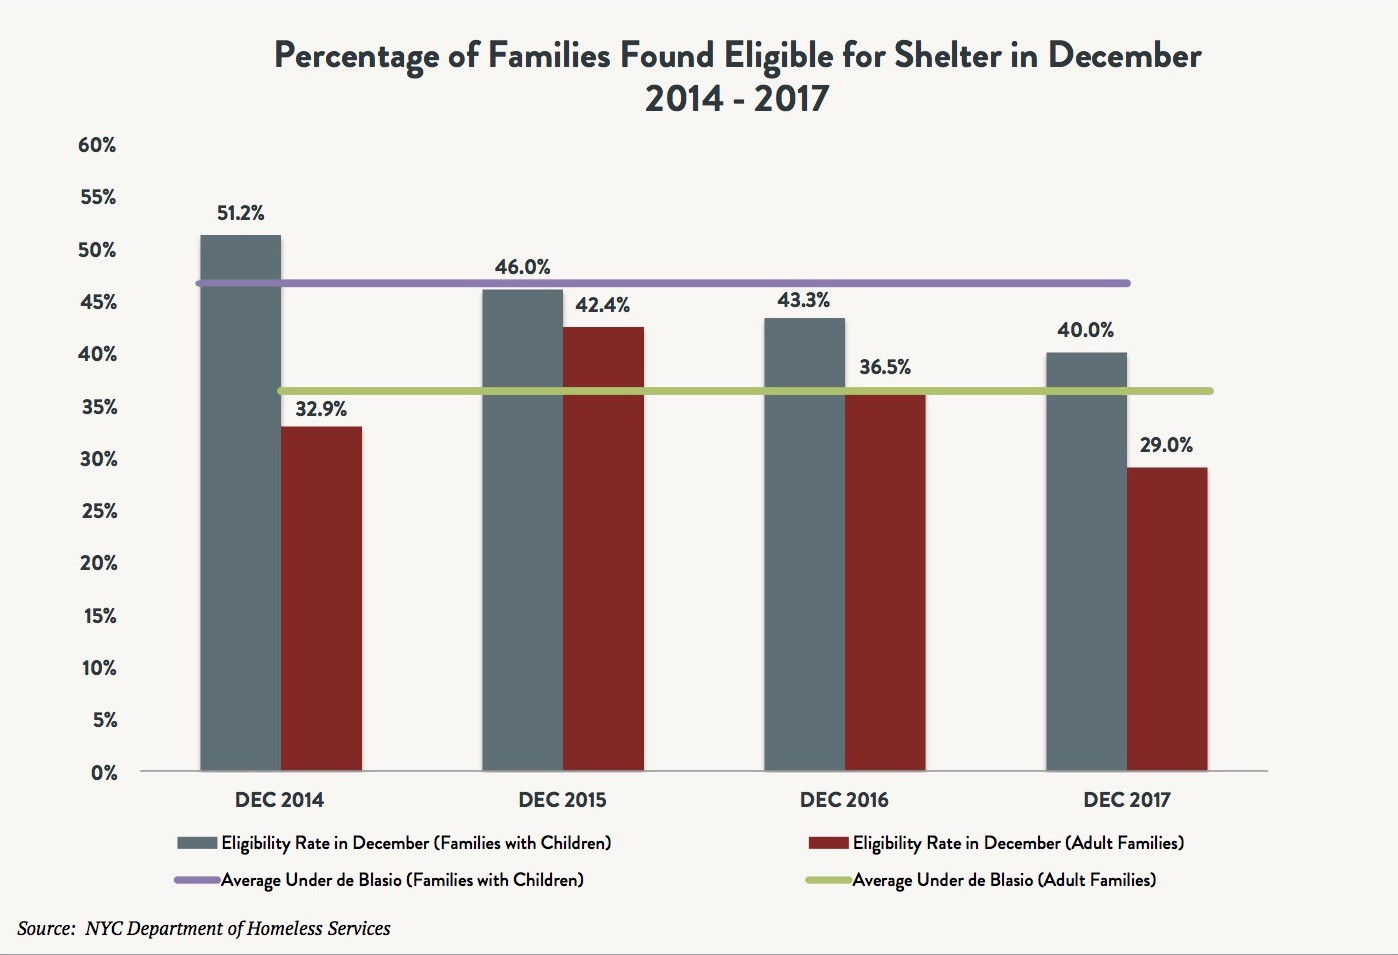 A bar and line graph depicting the percentage of adult families and families with children found eligible for shelter in December between 2014 and 2017.